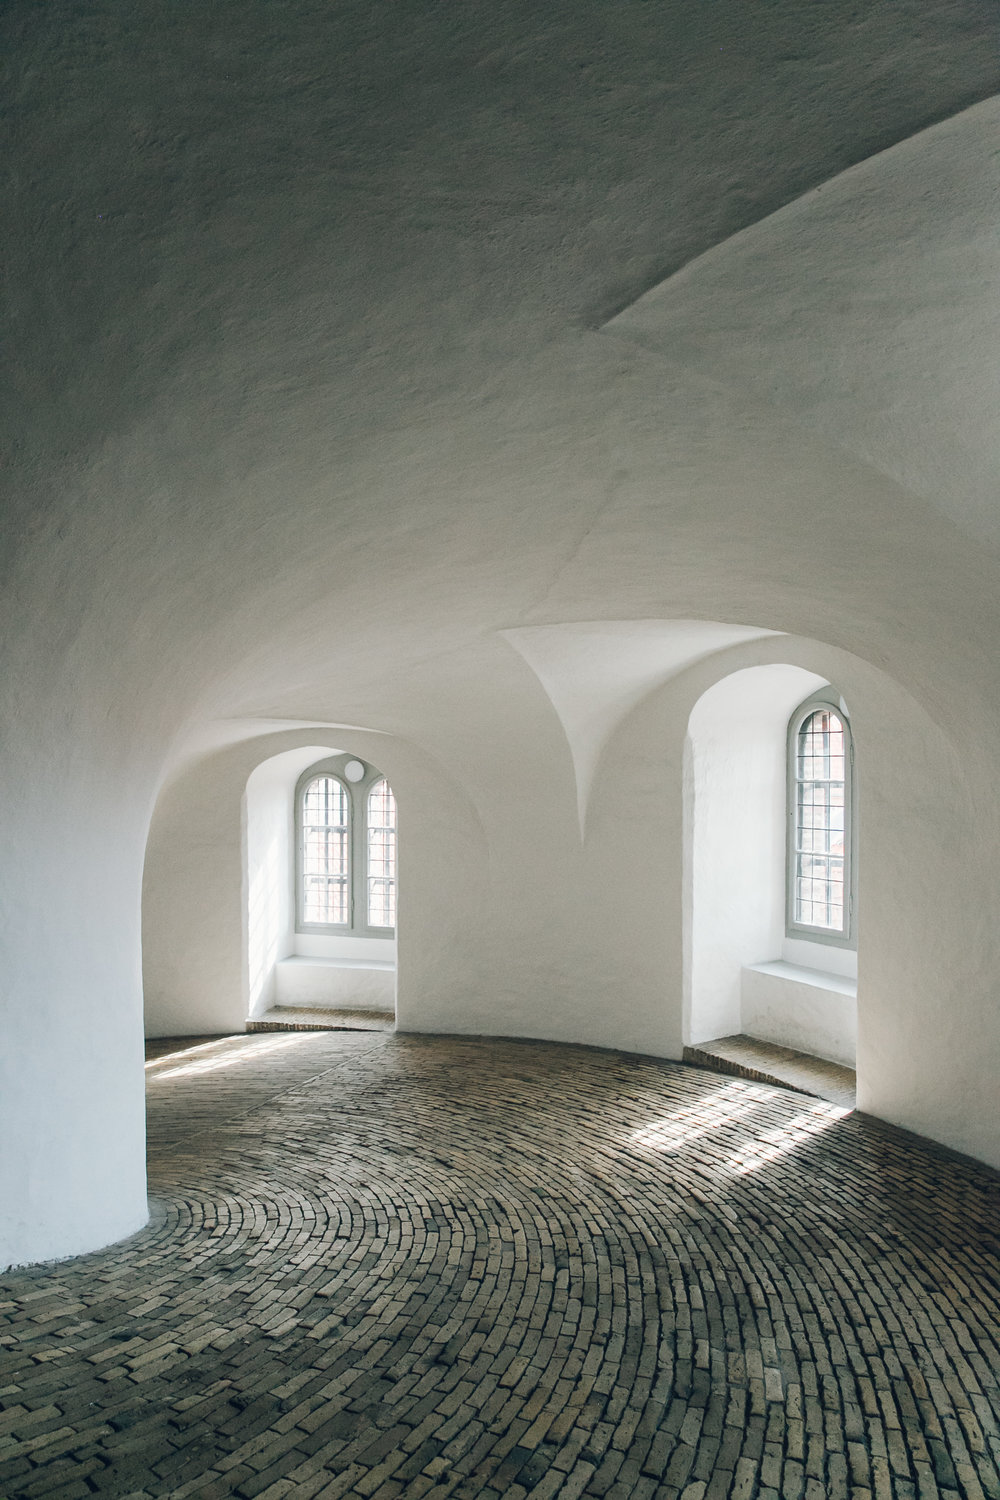 72 hours in Copenhagen - inside the Rundetarn.